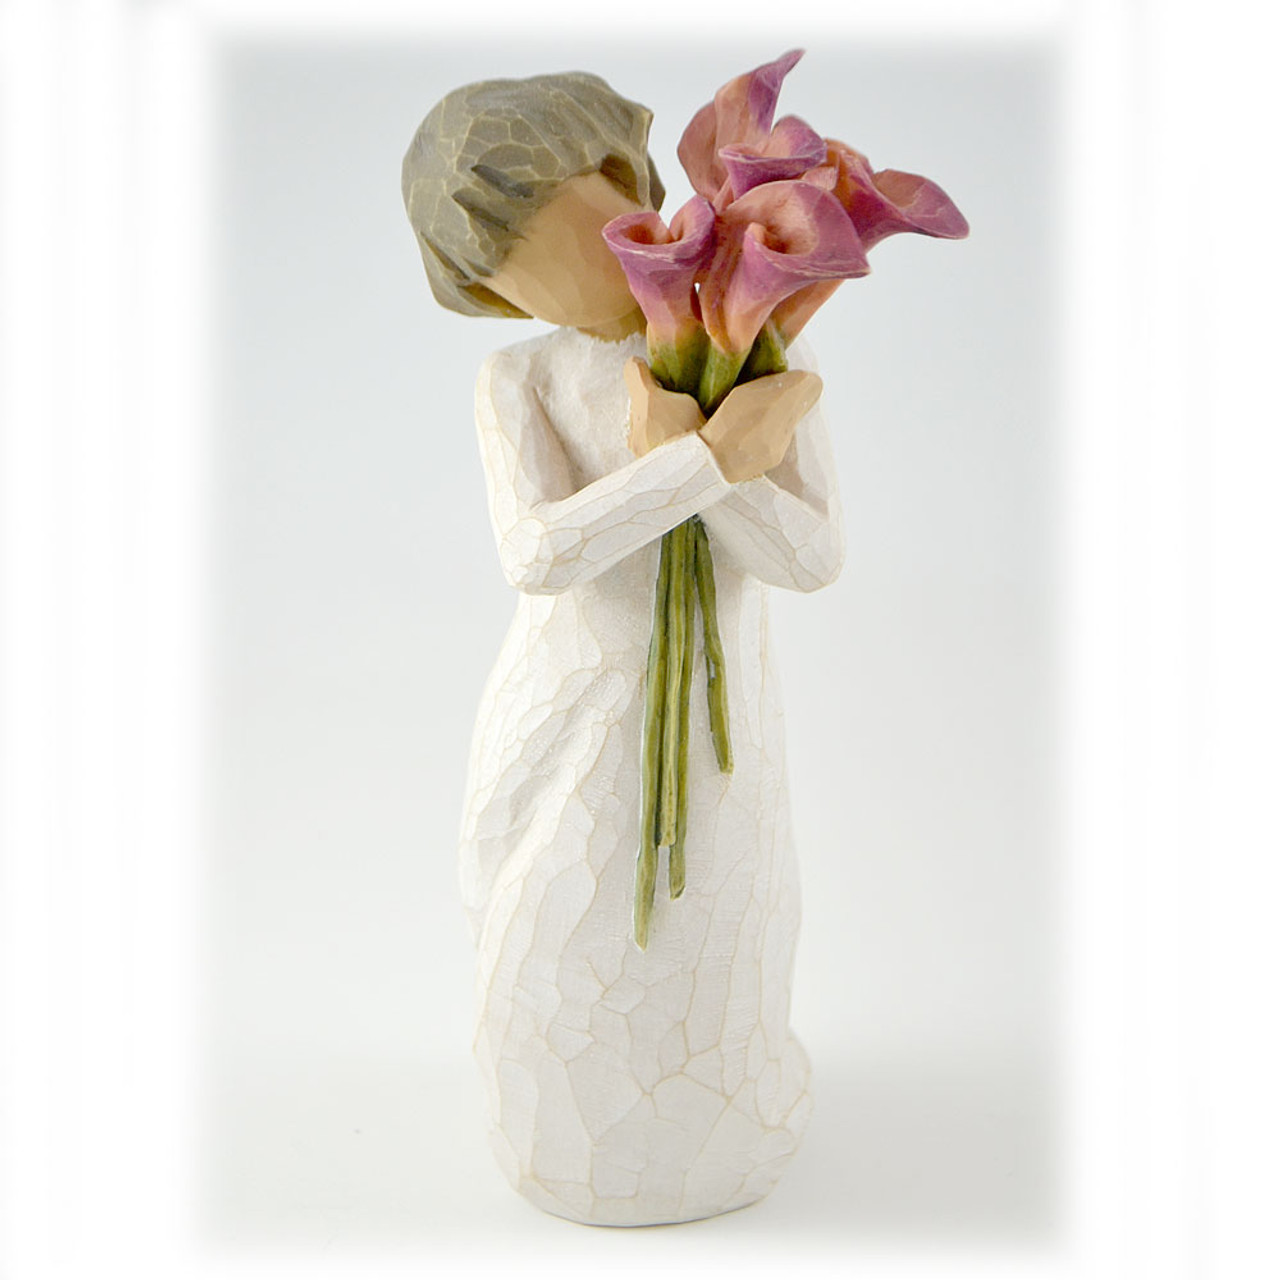 Bloom Willow Tree Figurine